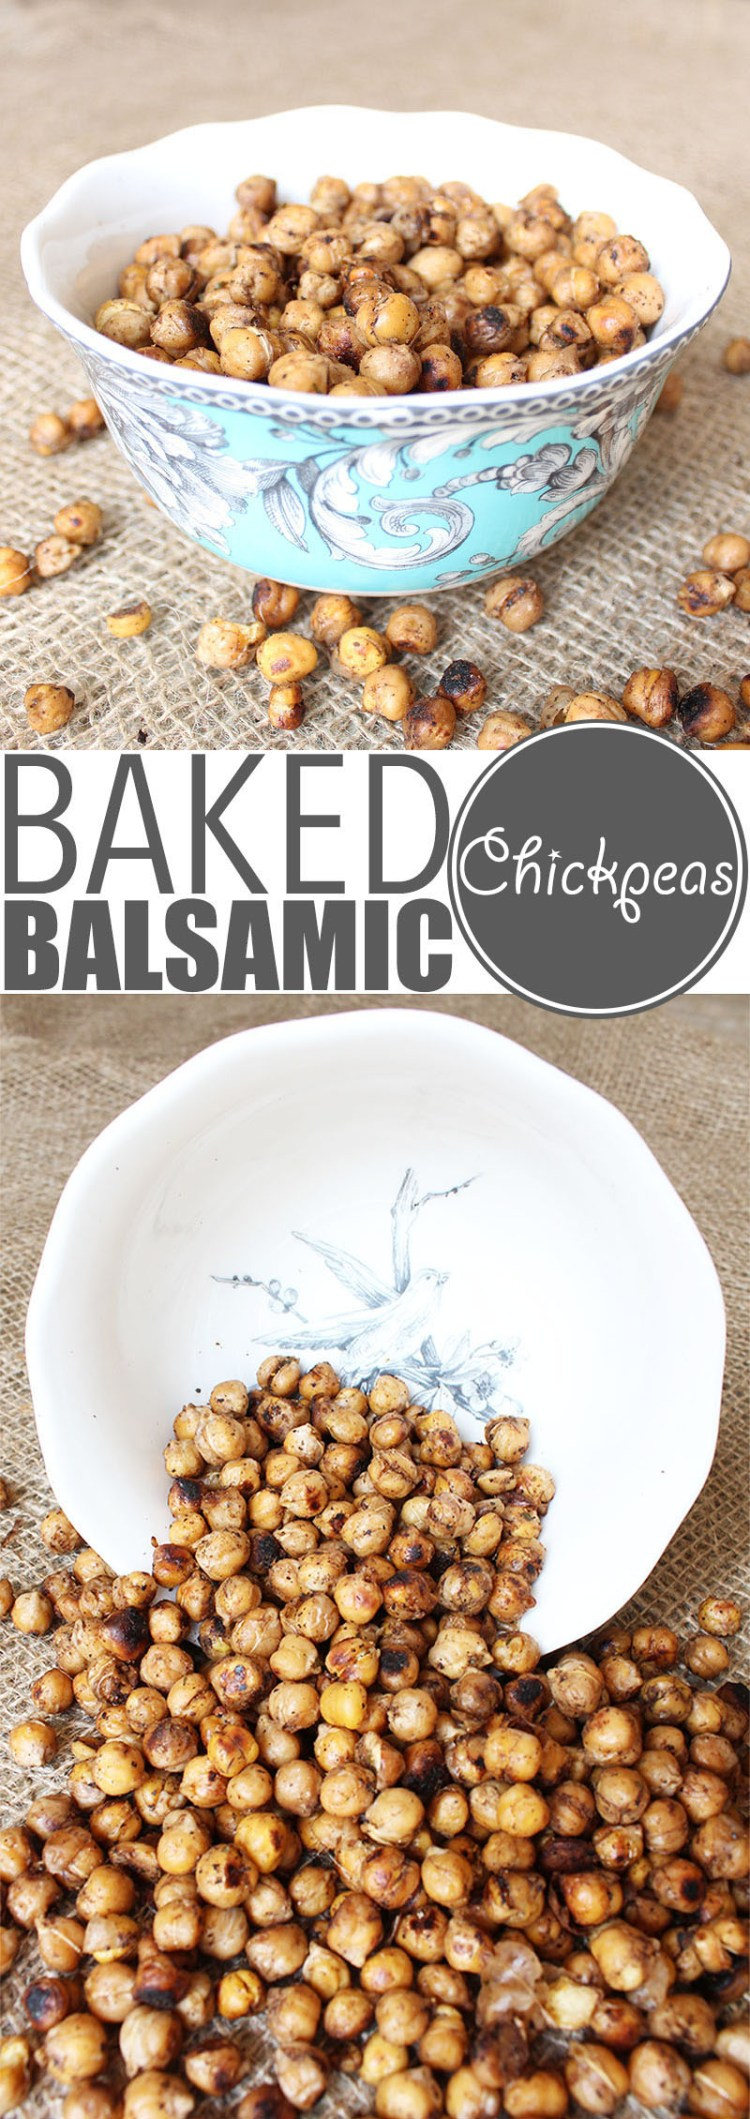 "Chickpeas are crazy versatile and so is my ""world famous"" baked chickpeas recipe. Eat them warm out of the oven, as a cold snack, with salad, pasta or rice!"